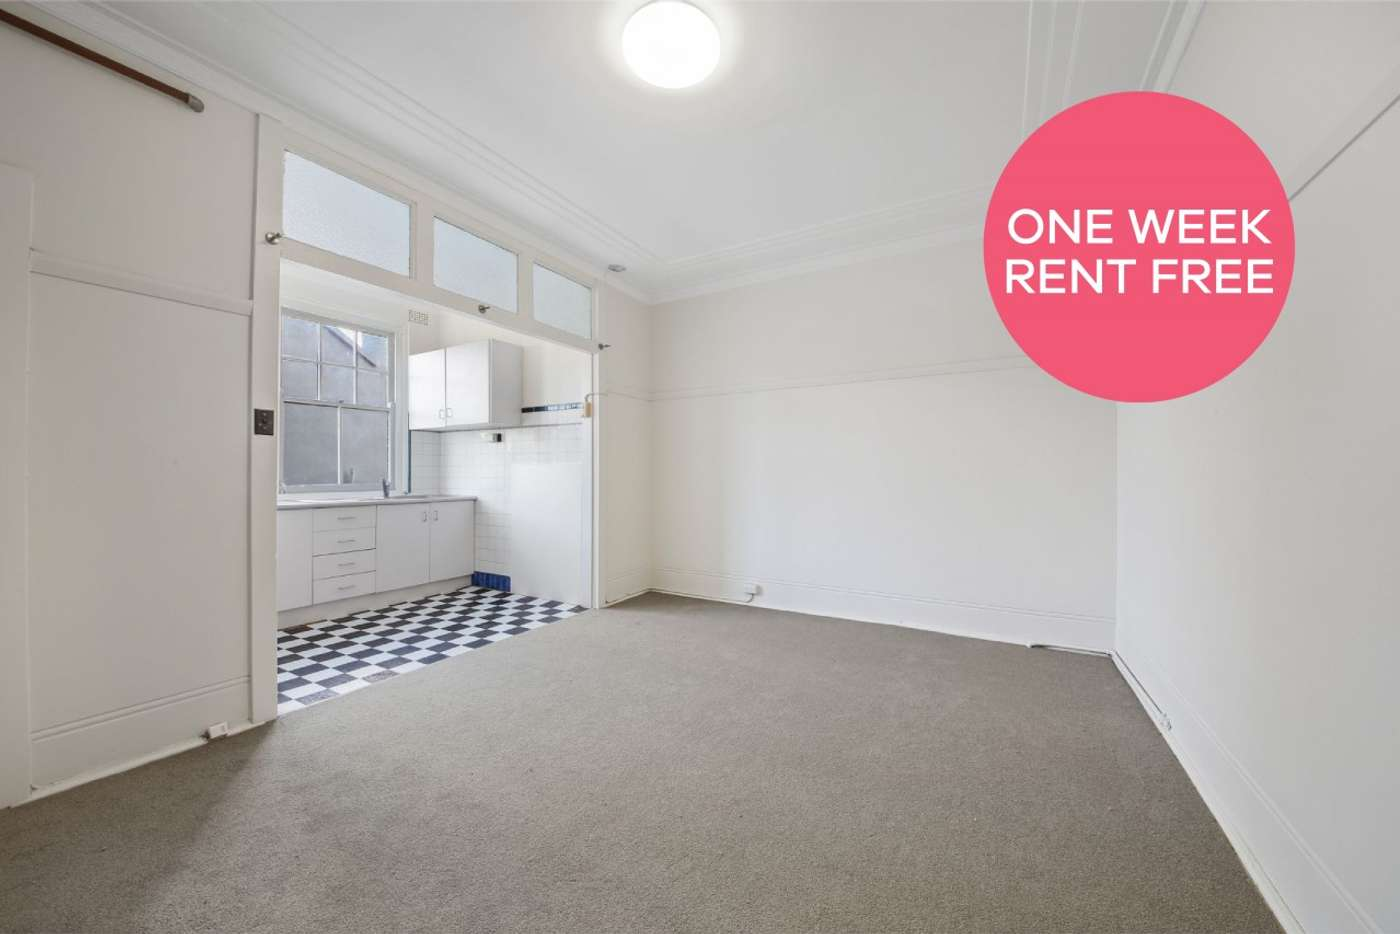 Main view of Homely studio listing, 18/5 Darley Street, Darlinghurst NSW 2010